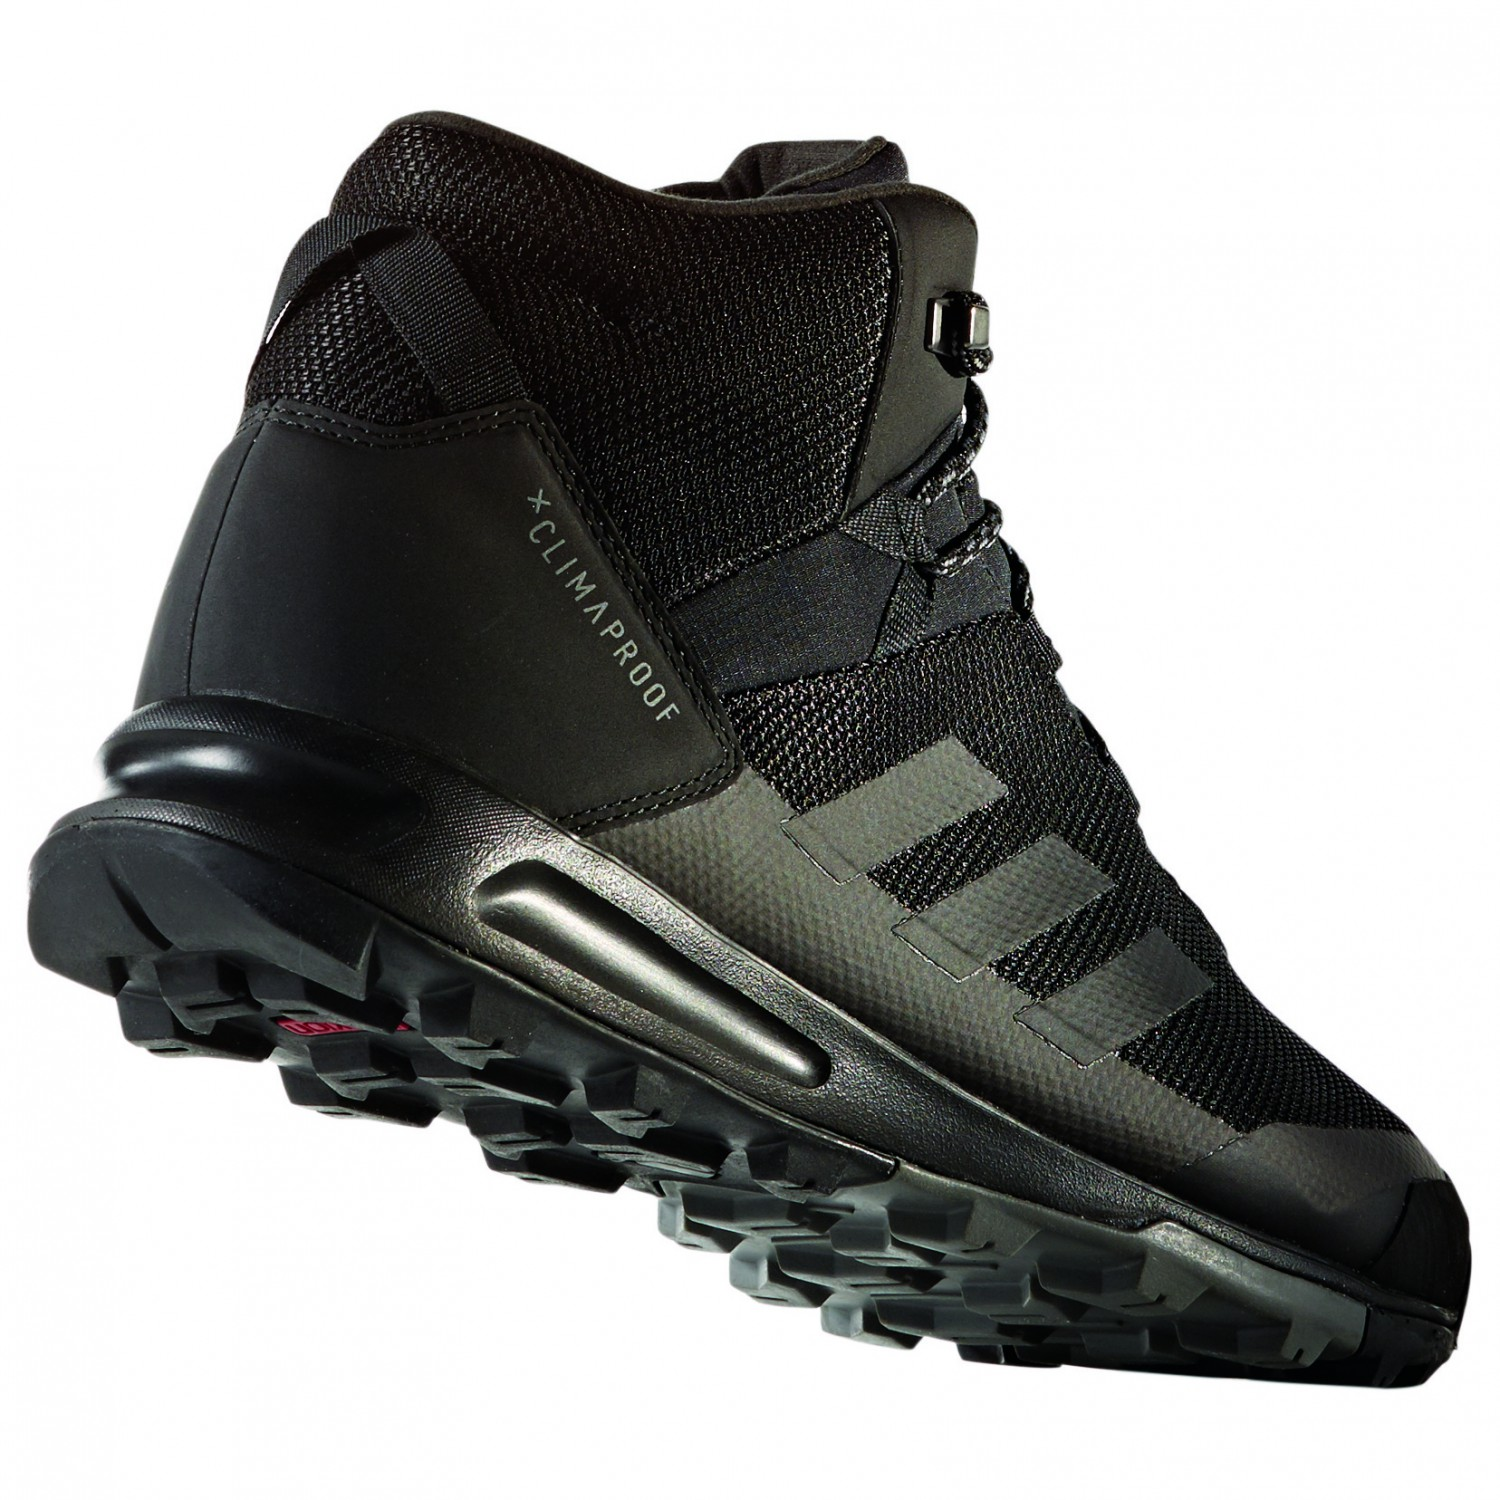 Homme Homme Hiver Chaussure Adidas Adidas Hiver Adidas Chaussure Hiver Chaussure wTPiOkZluX